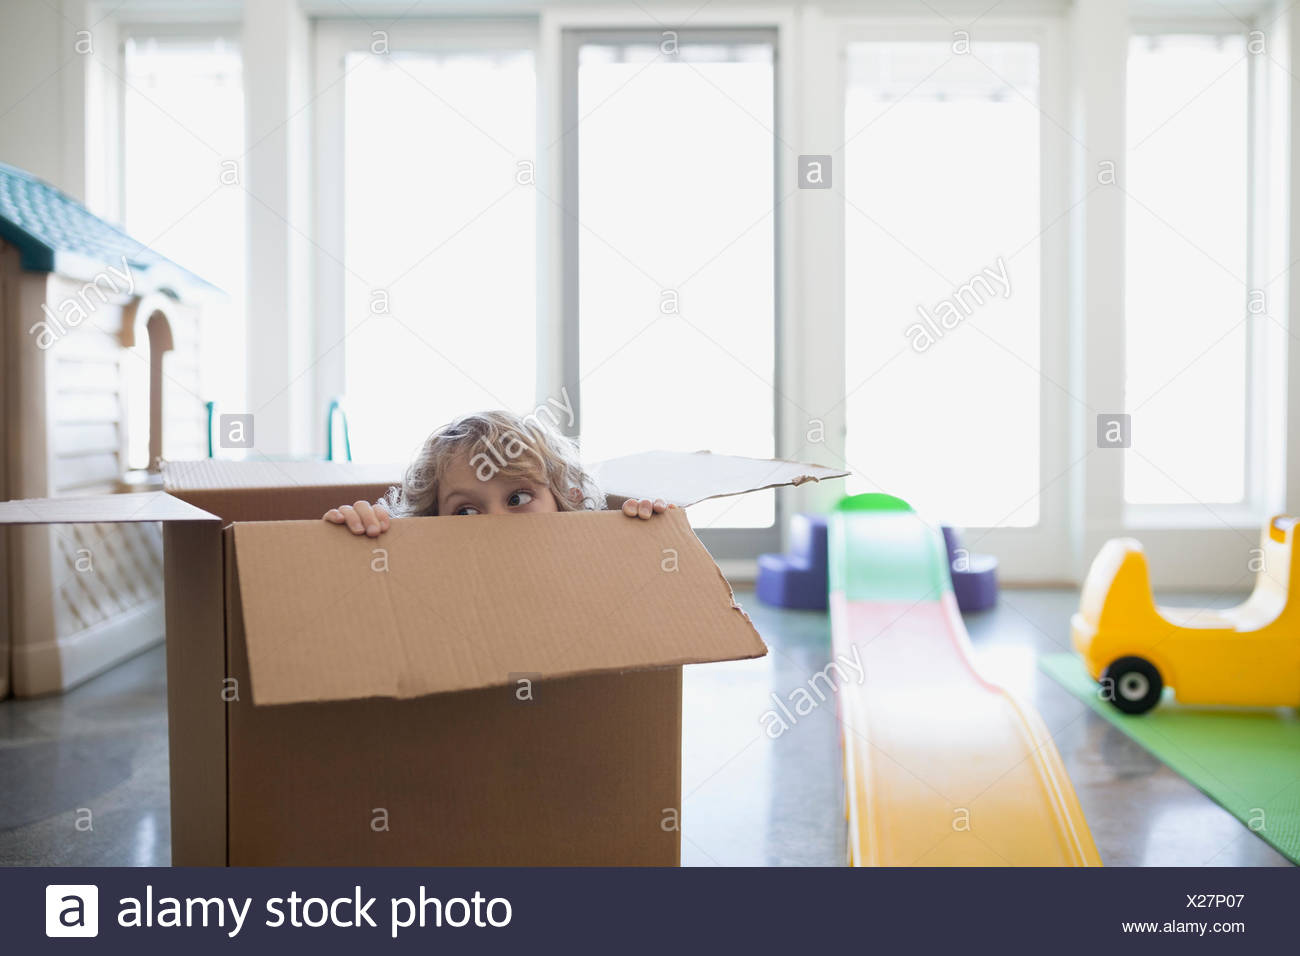 Boy hiding in cardboard box - Stock Image